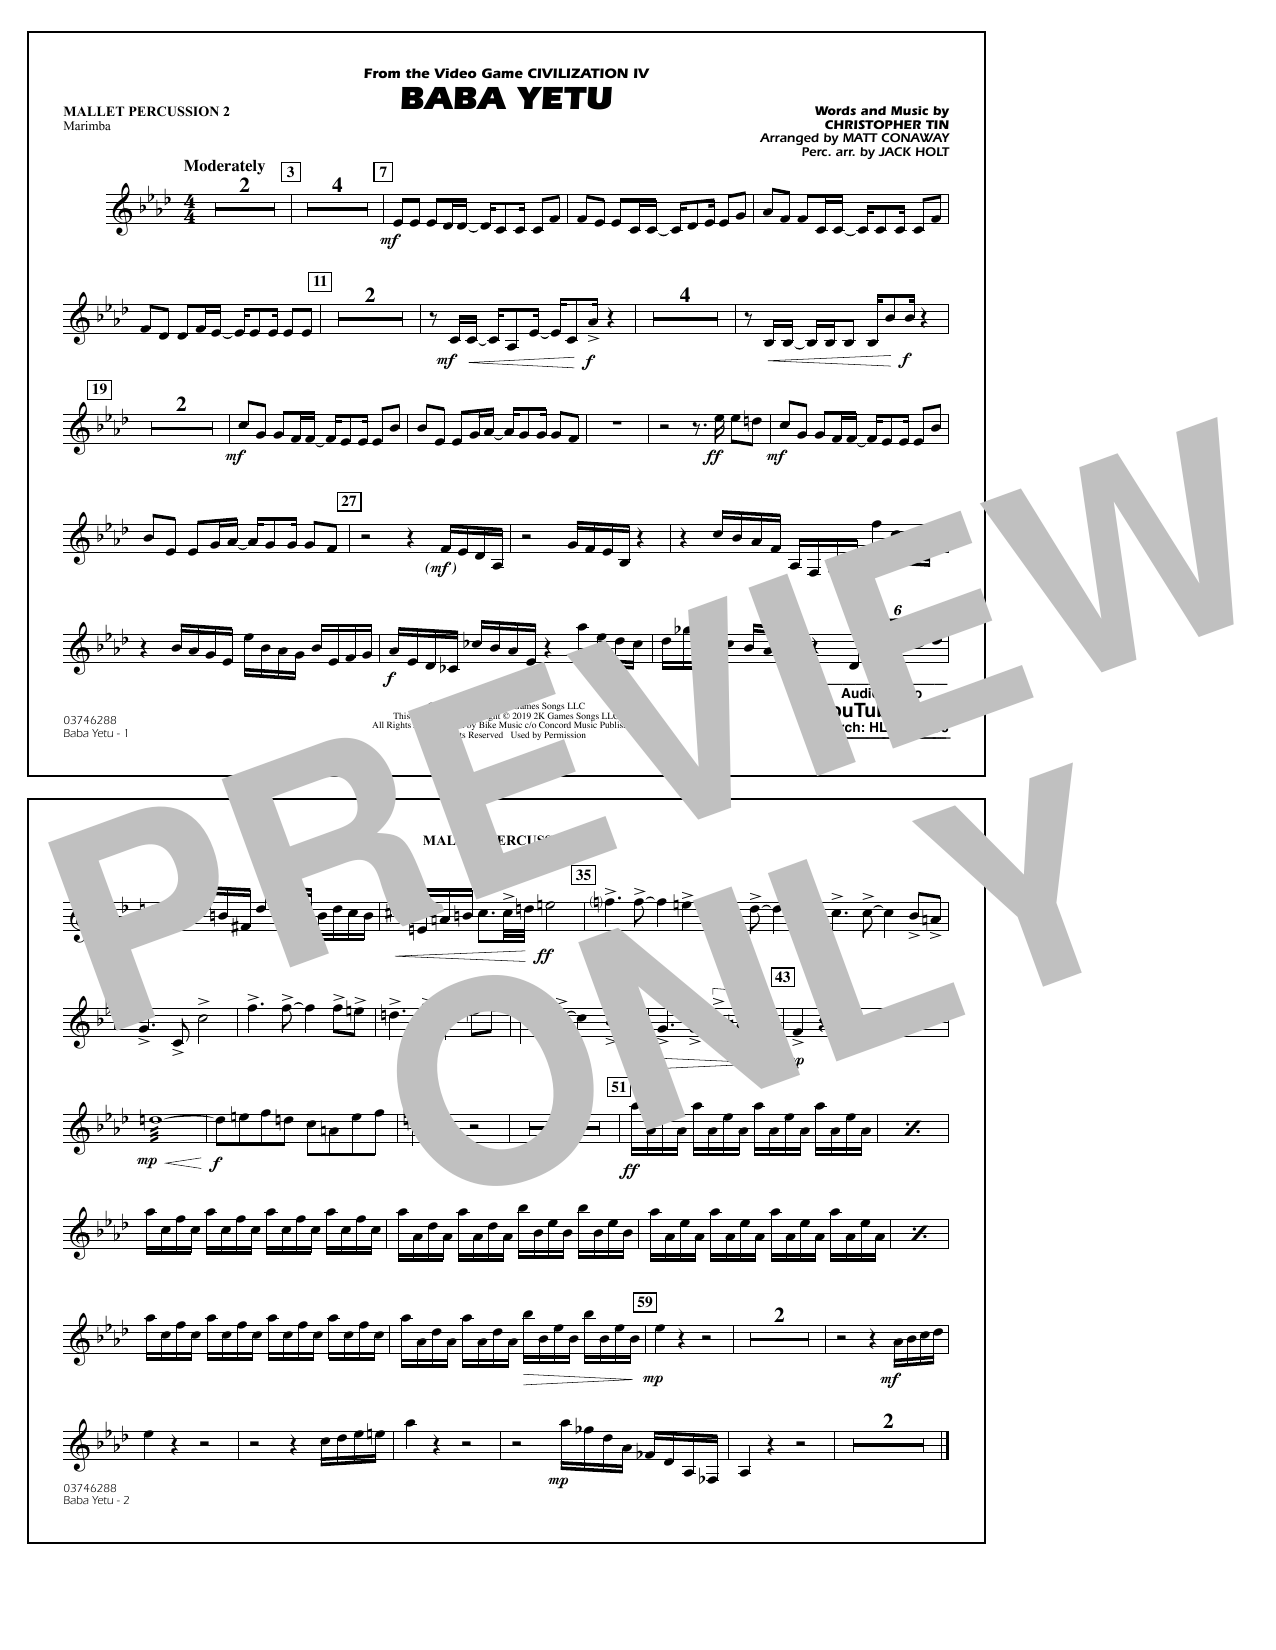 Baba Yetu (from Civilization IV) (arr. Matt Conaway) - Mallet Percussion 2 (Marching Band)